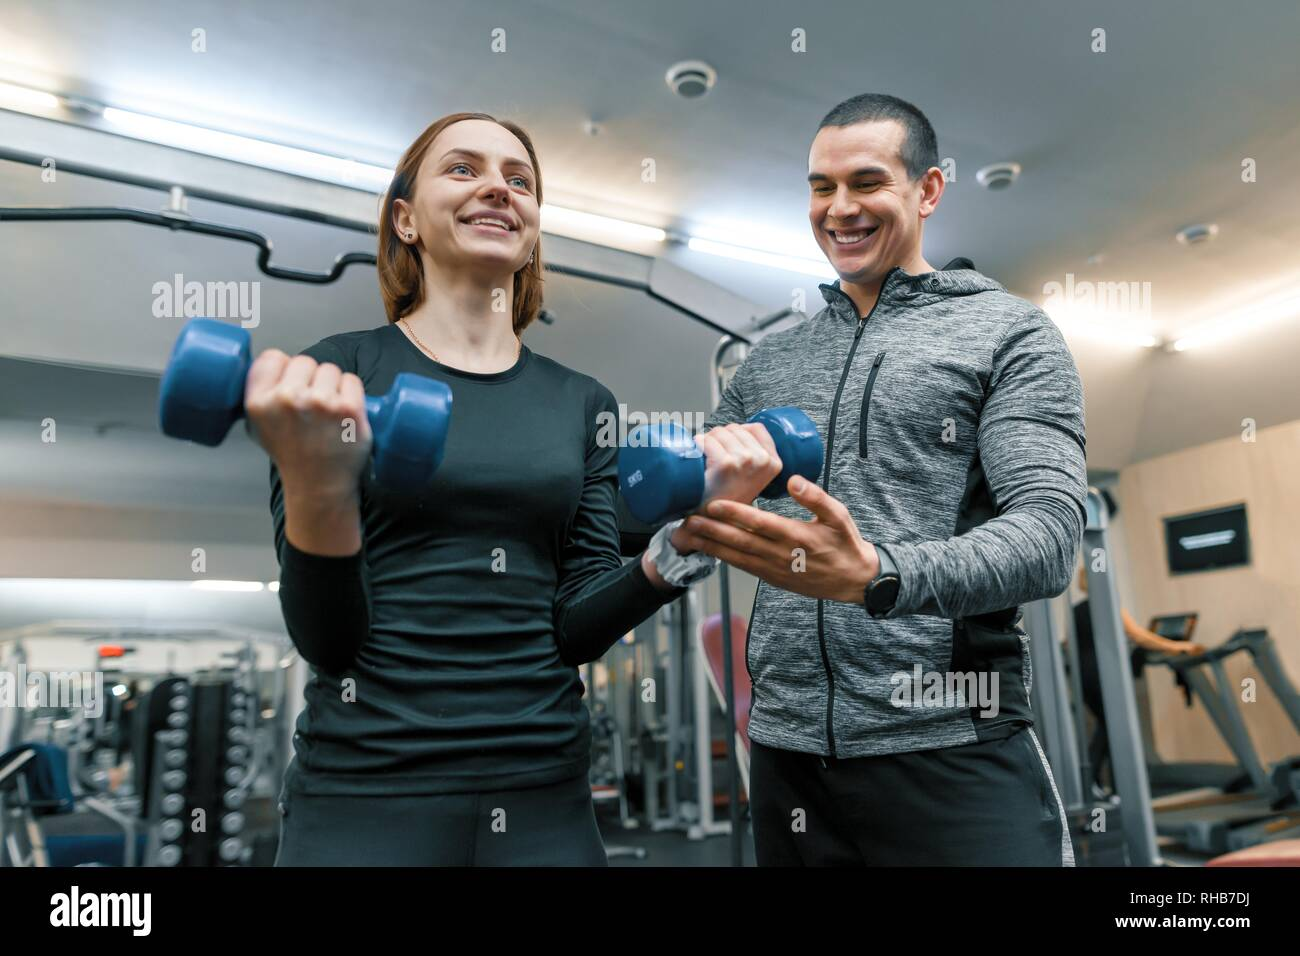 Female Trainer Gym Weight Lift Stock Photos  Female -5155